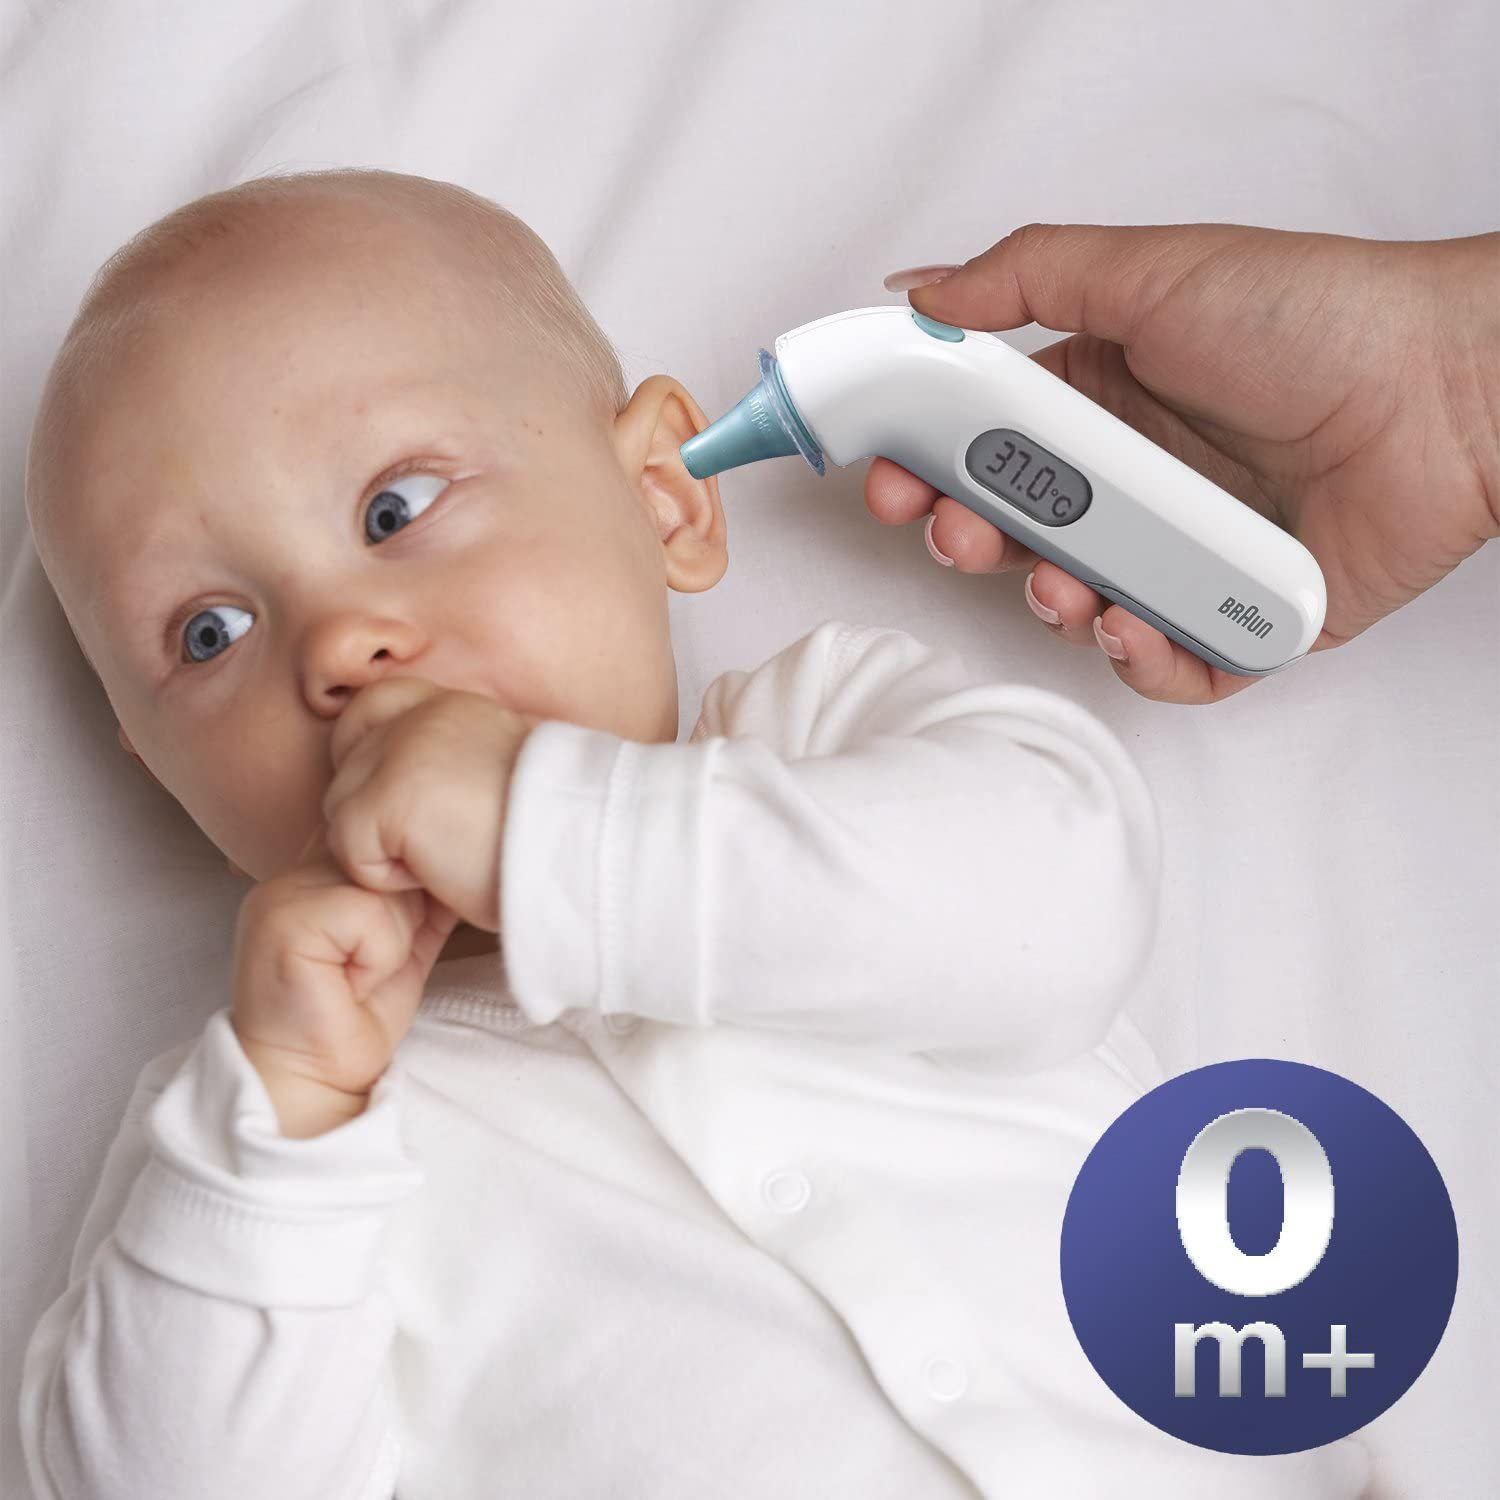 Braun IRT3030 ThermoScan 3 Ear Thermometer image